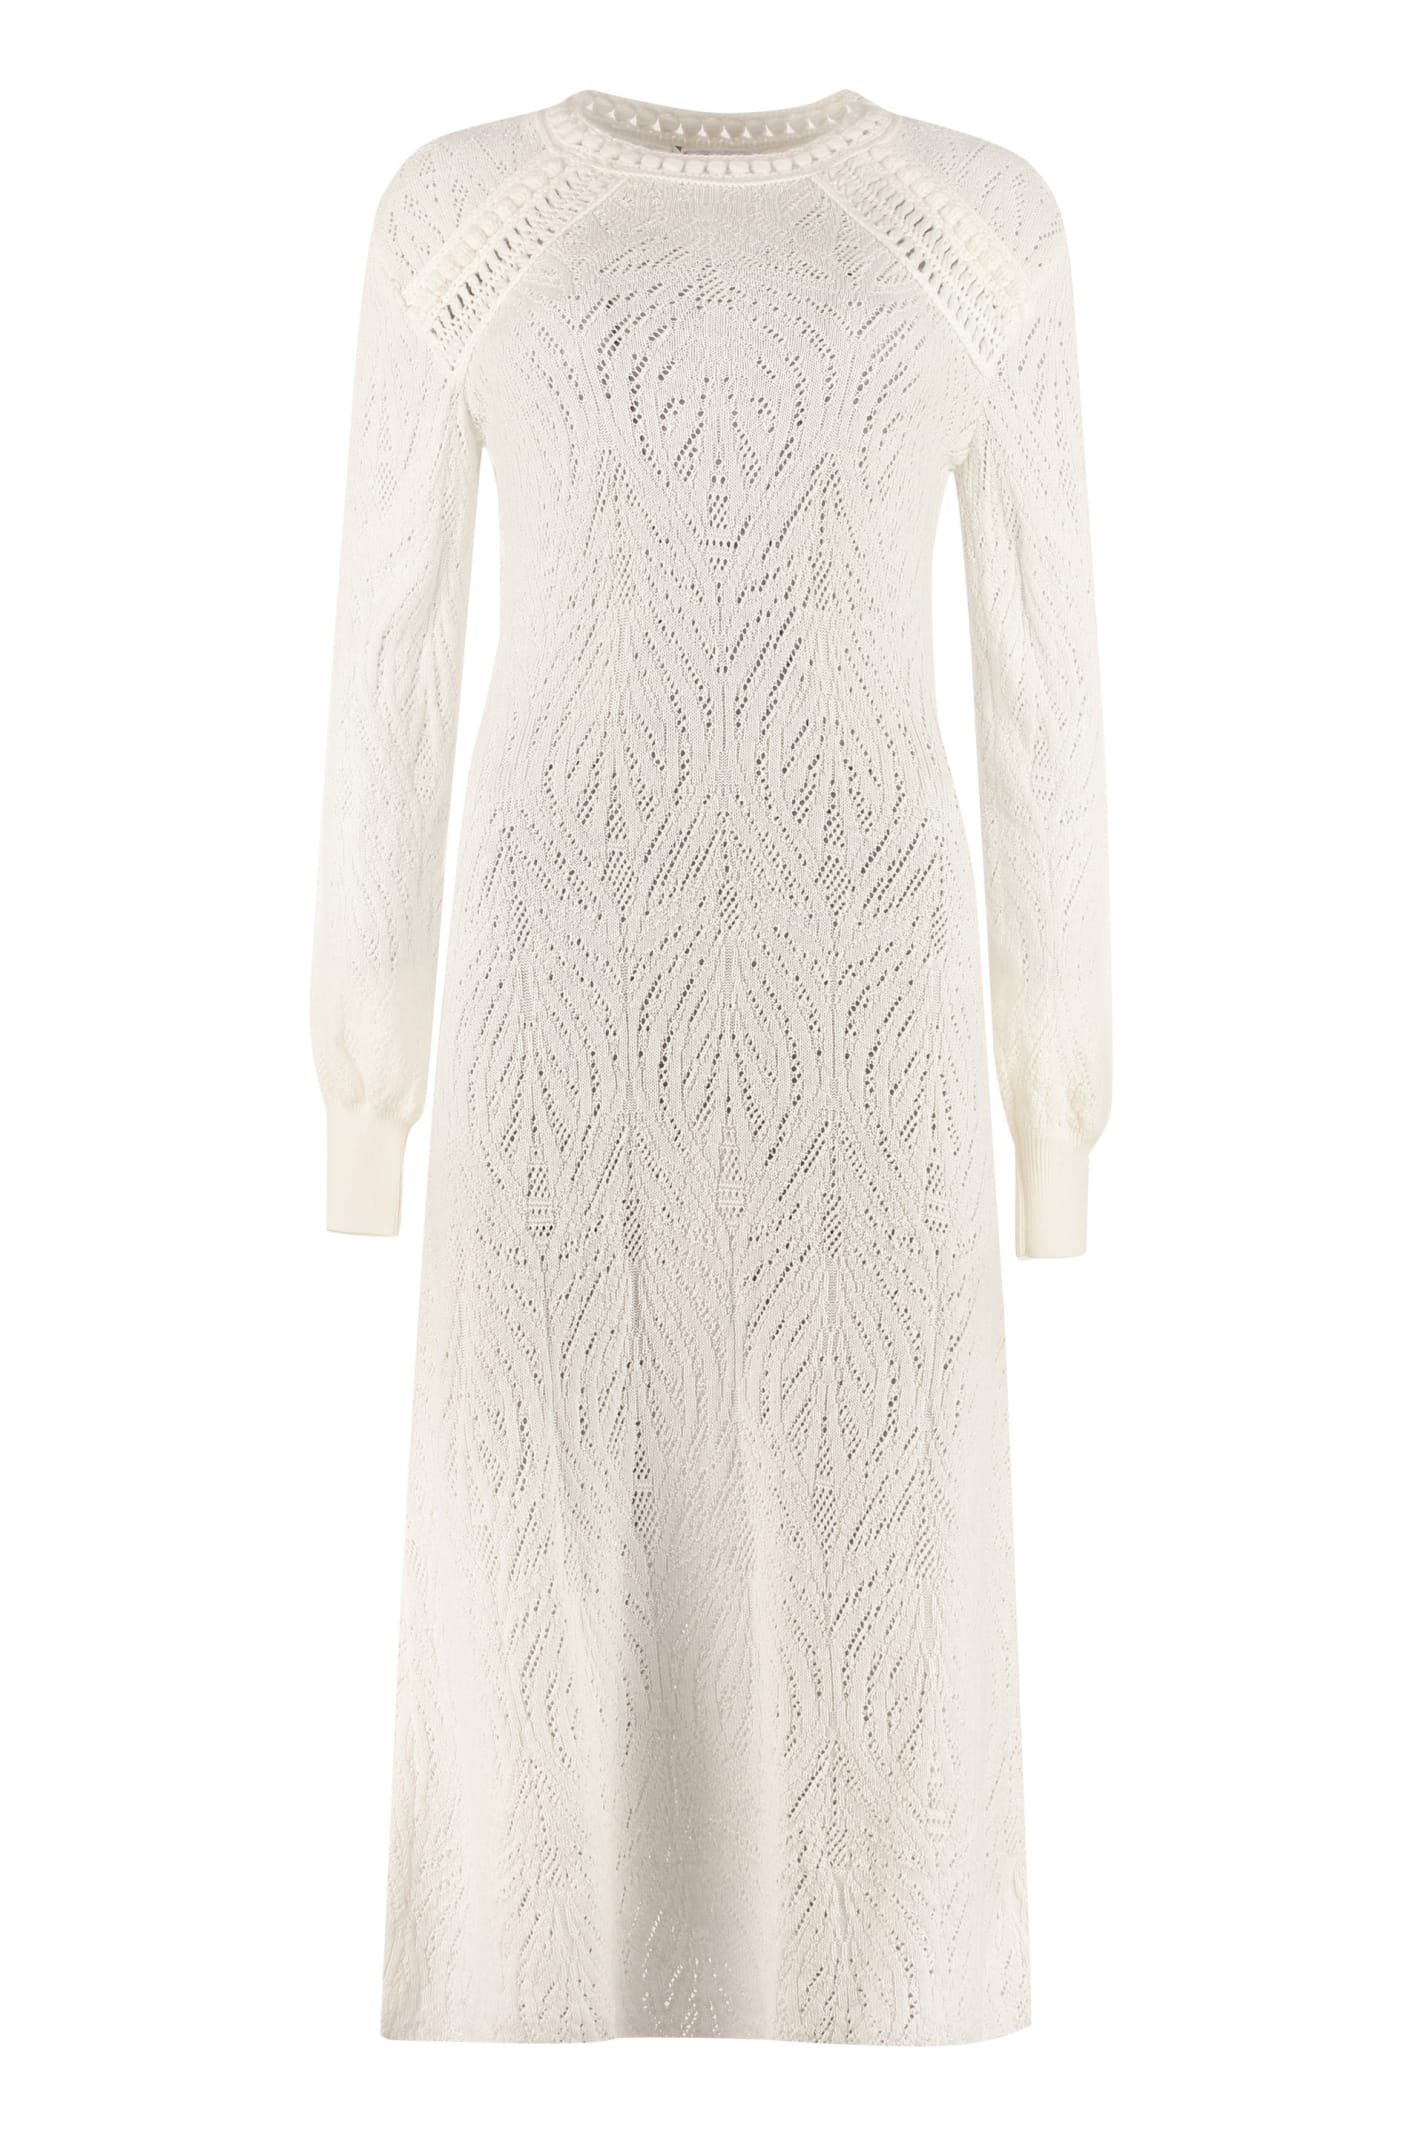 Alberta Ferretti Openwork-knit Dress